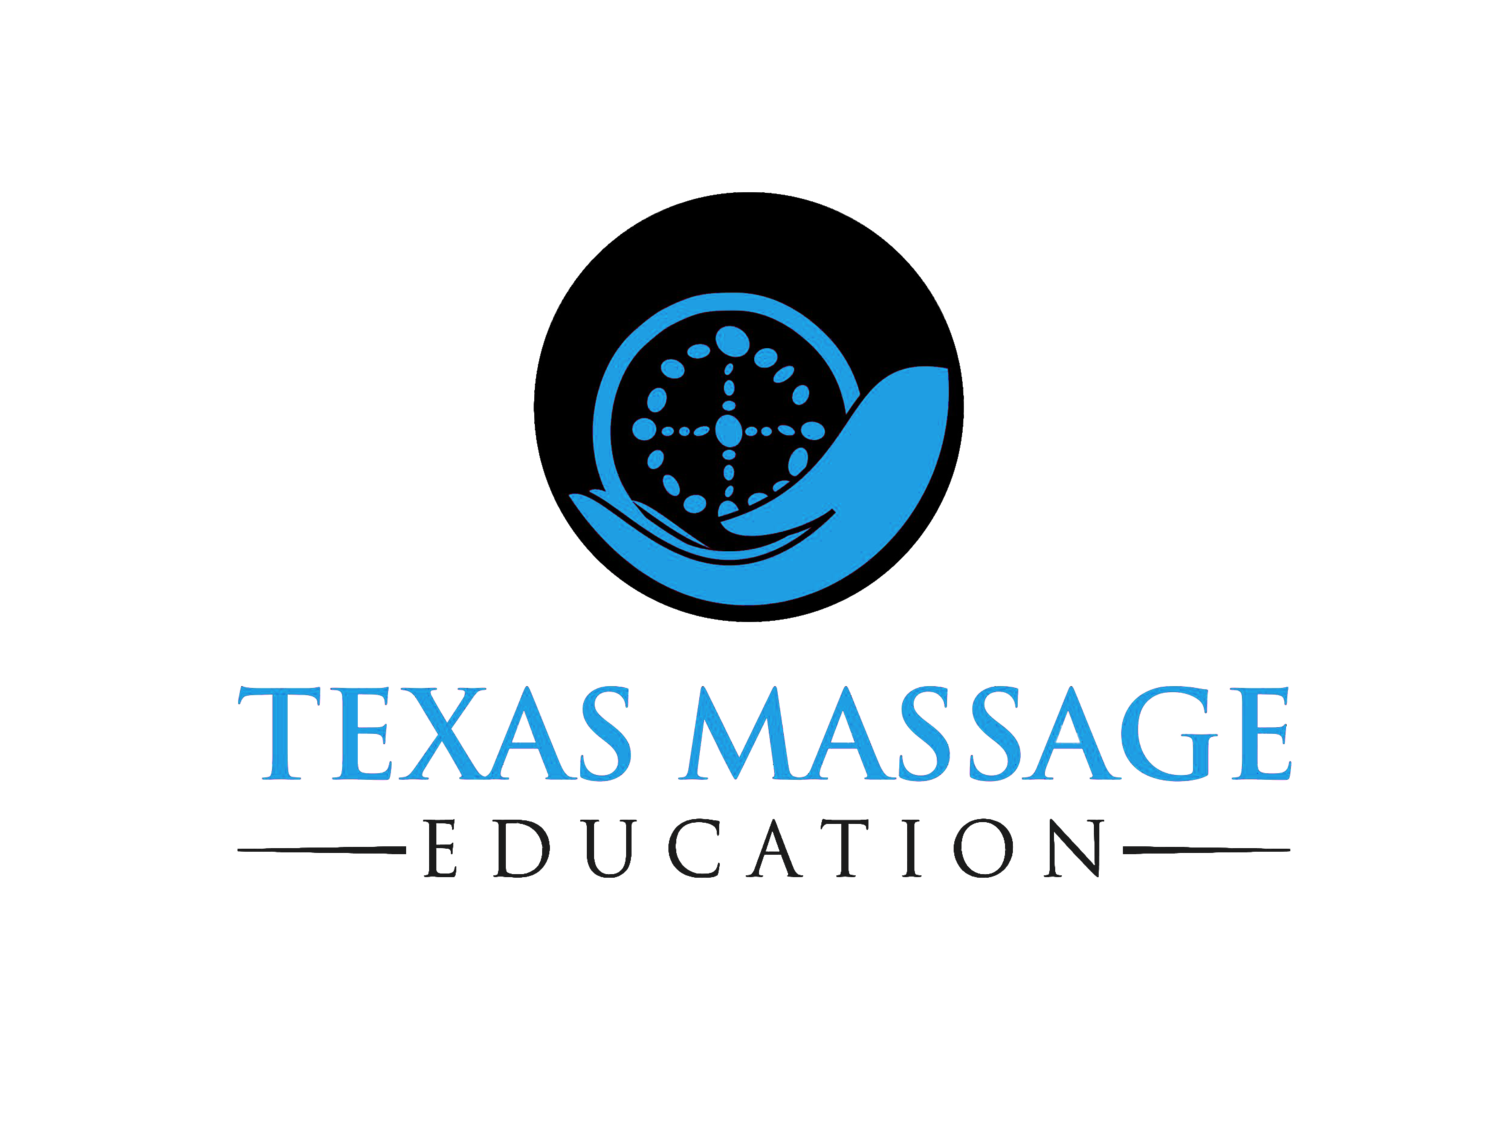 Dot Hips And Thigh Texas Massage Education